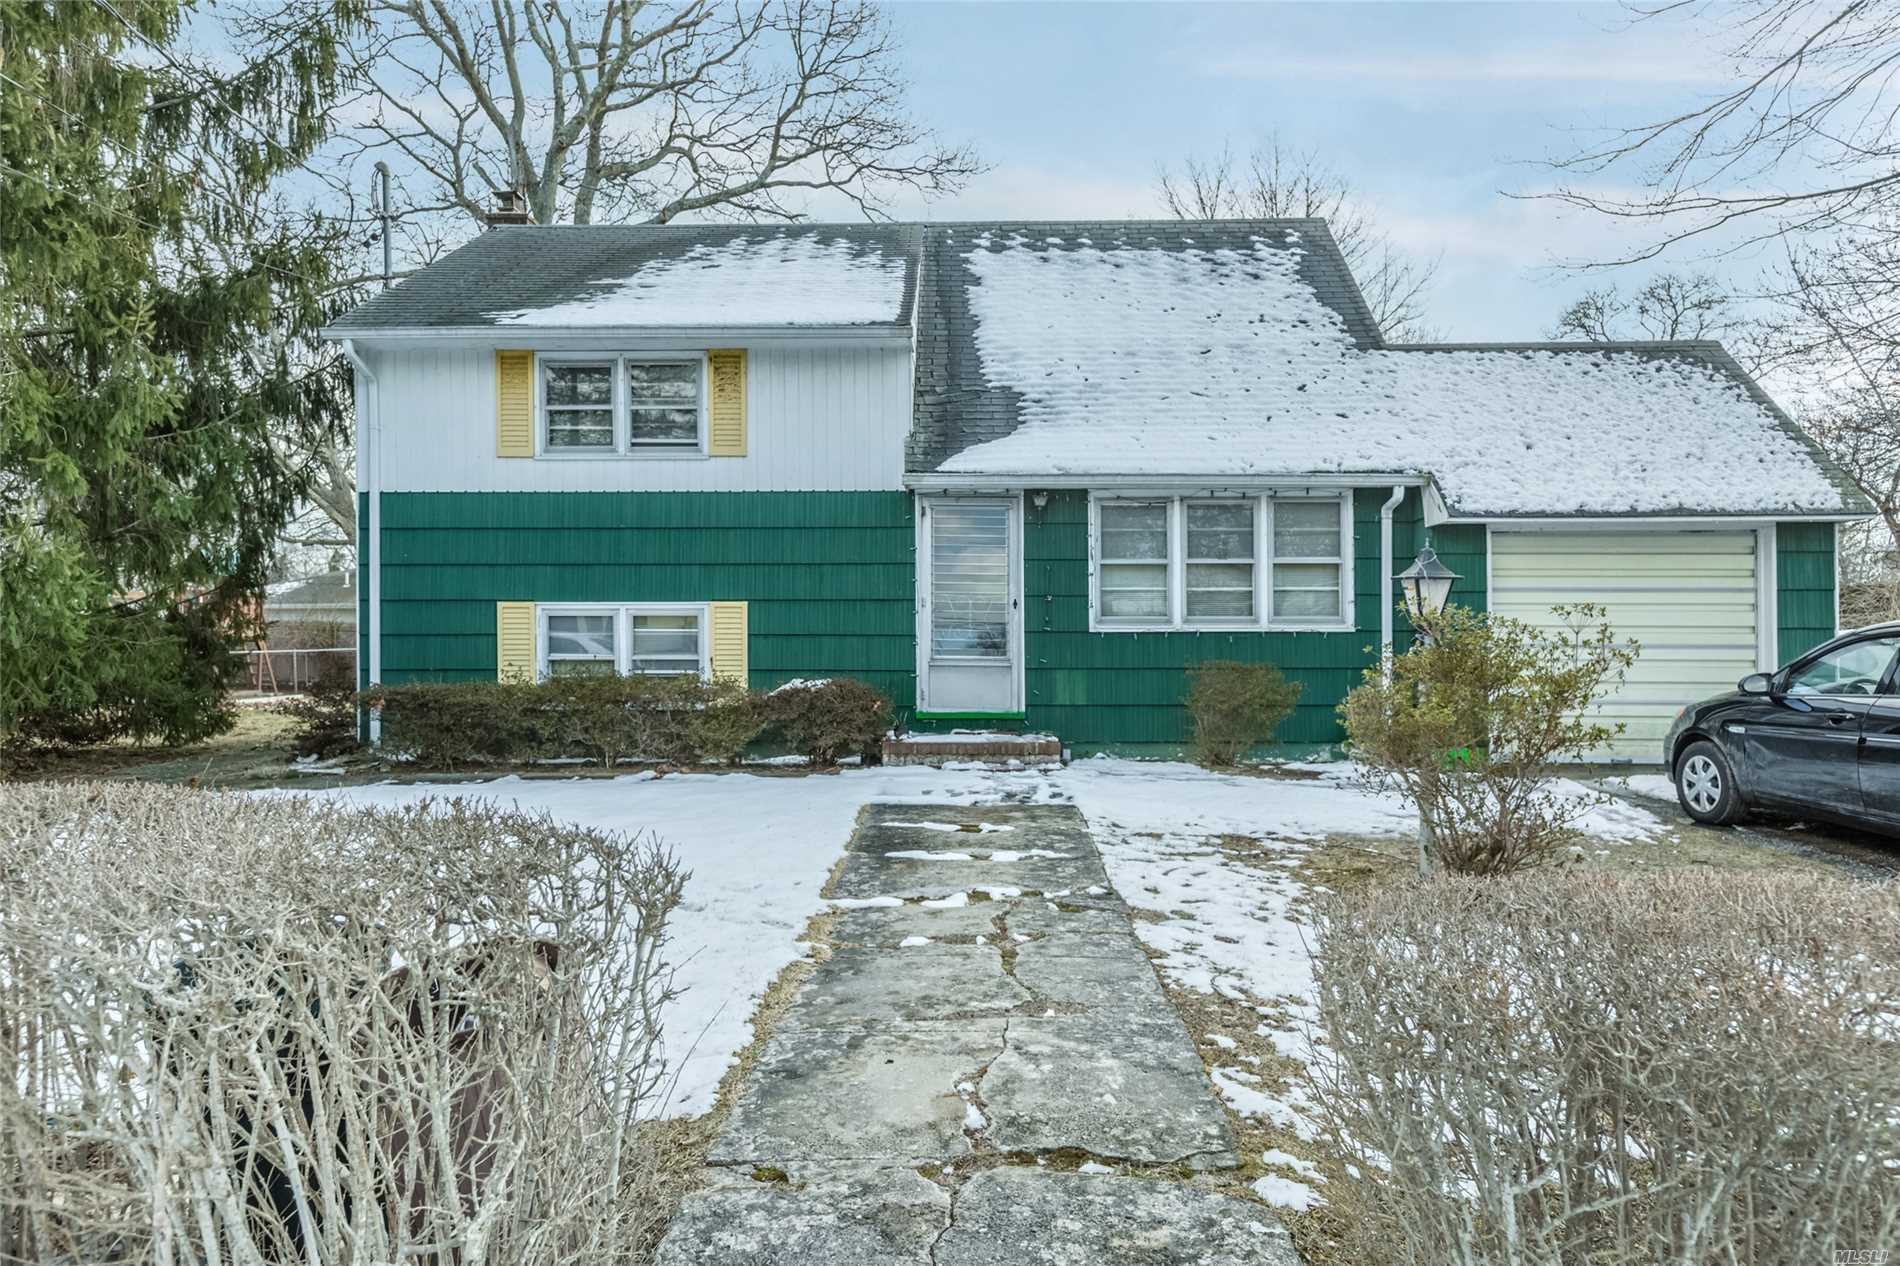 52 Fairview Dr - Shirley, New York